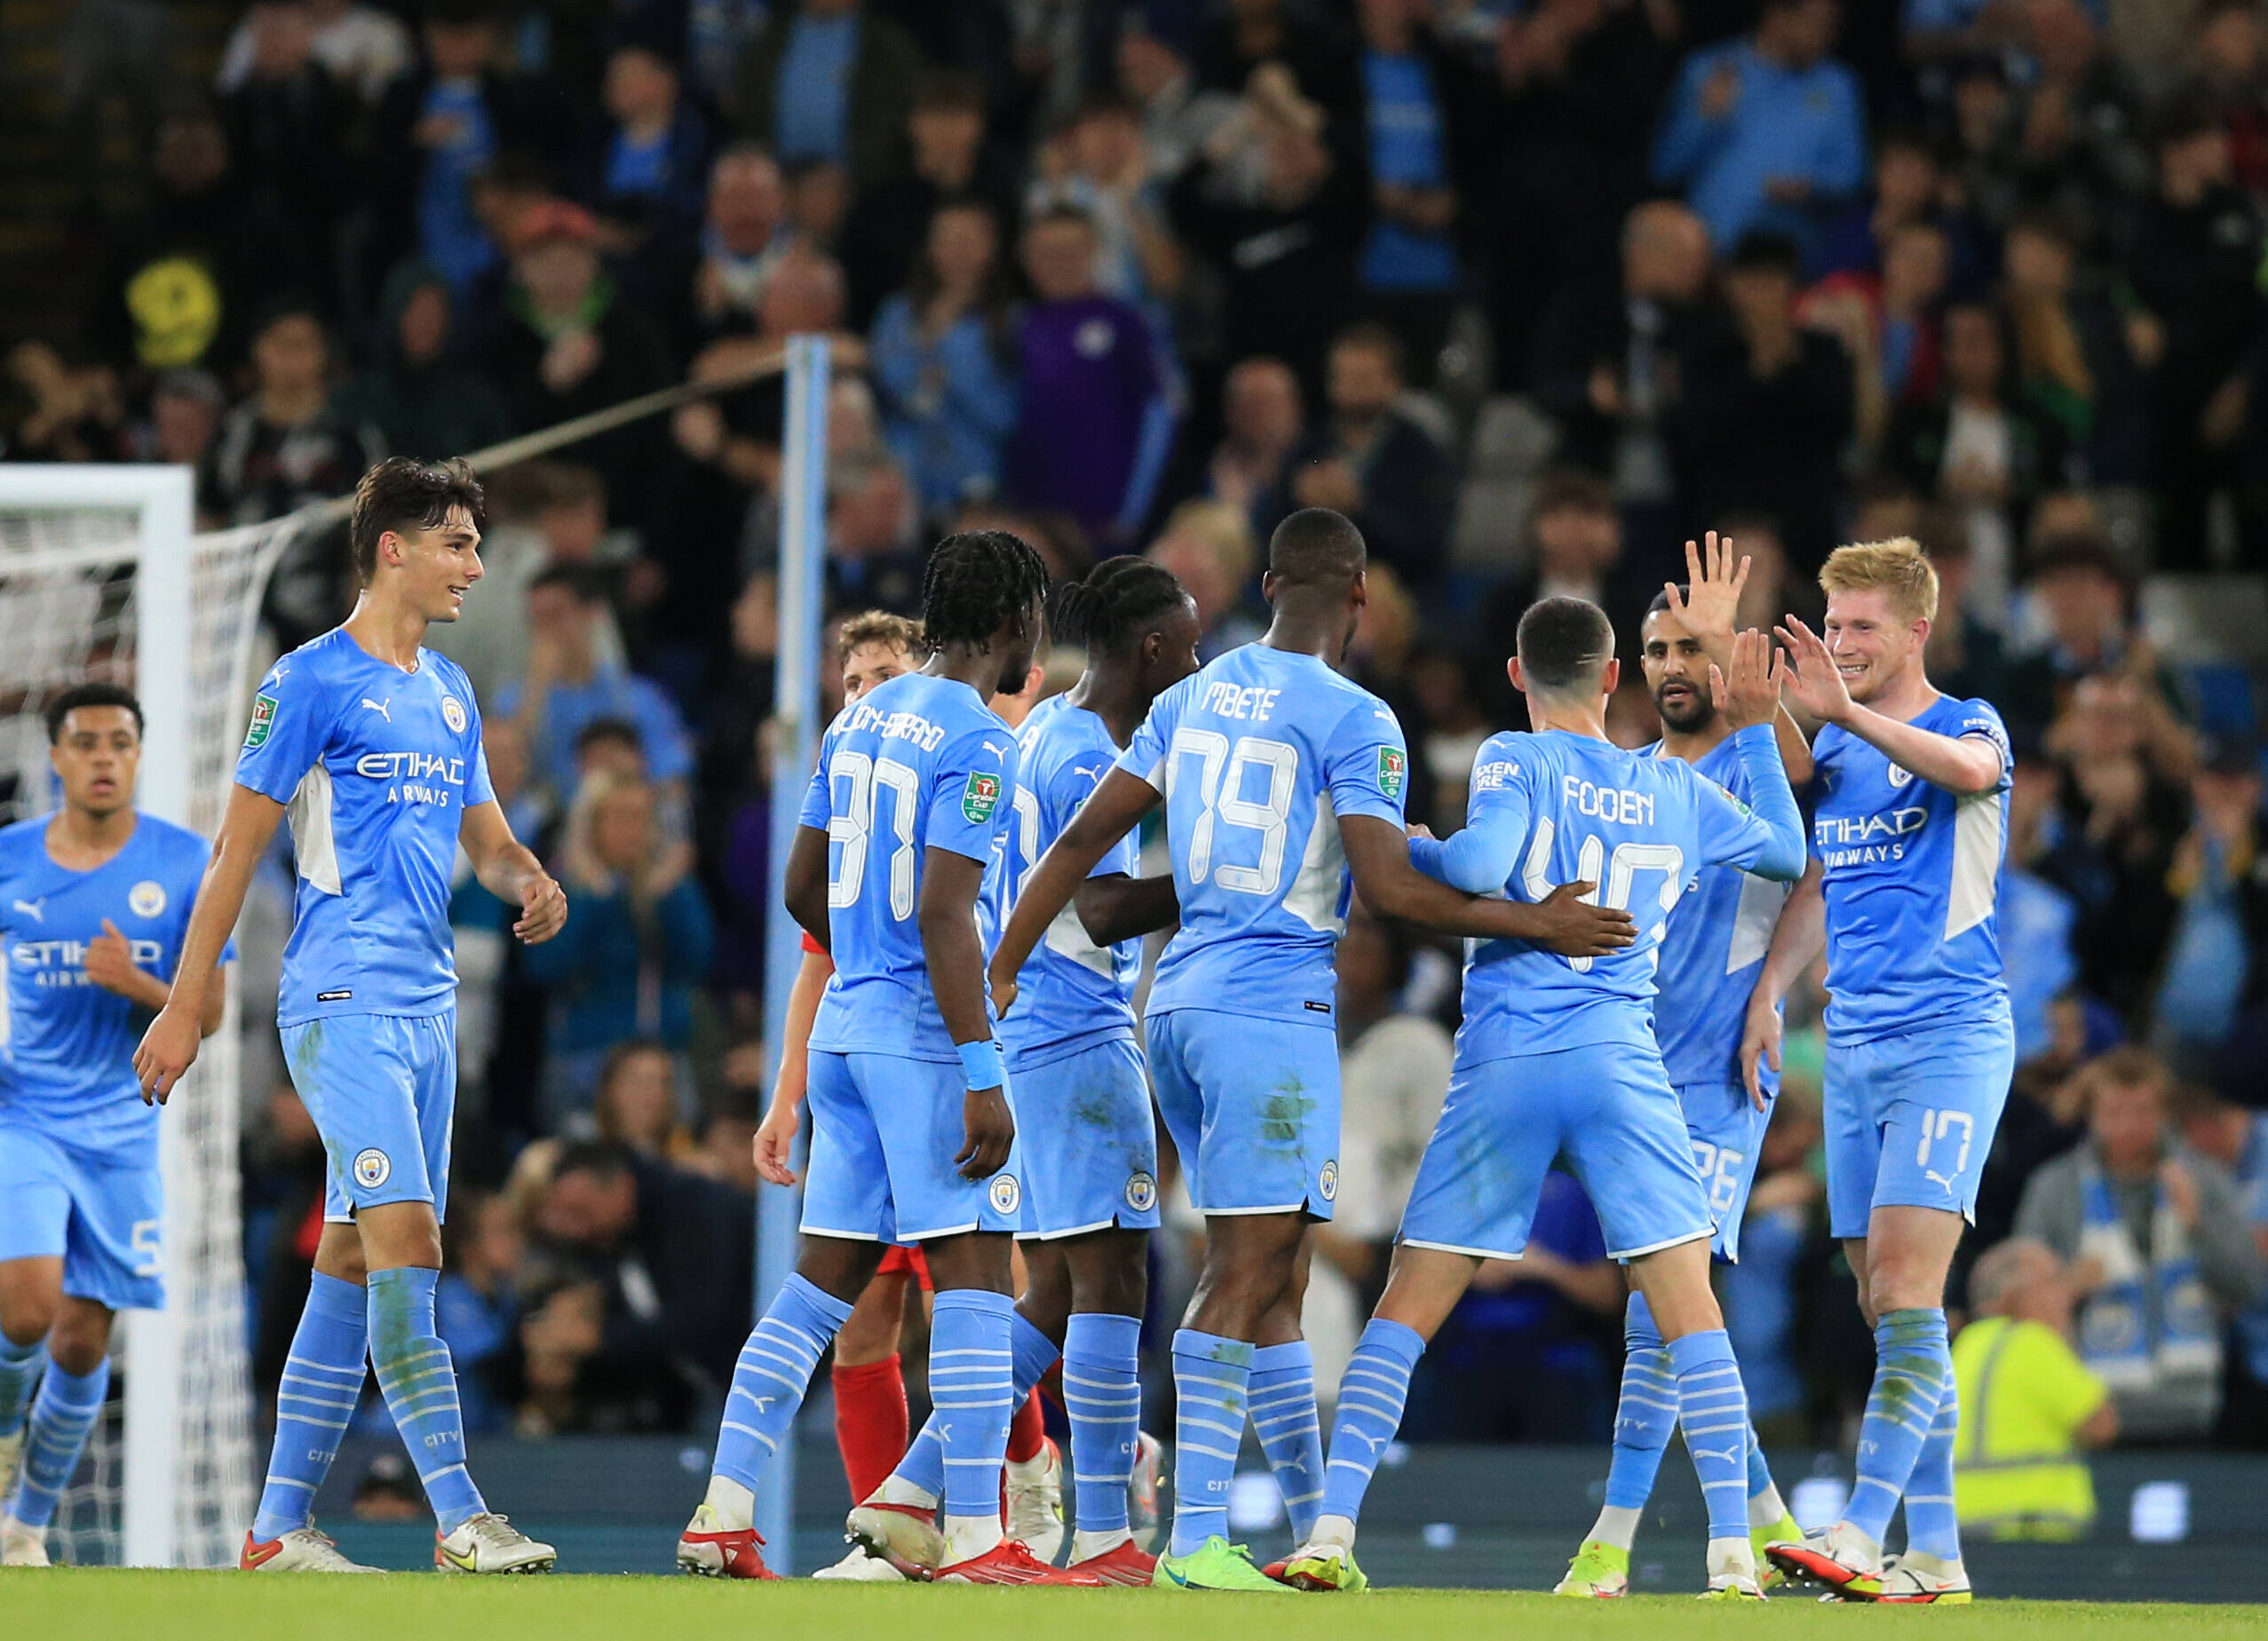 Paris Saint-Germain Vs Manchester City Tactical Preview (Man City players are seen in the photo)